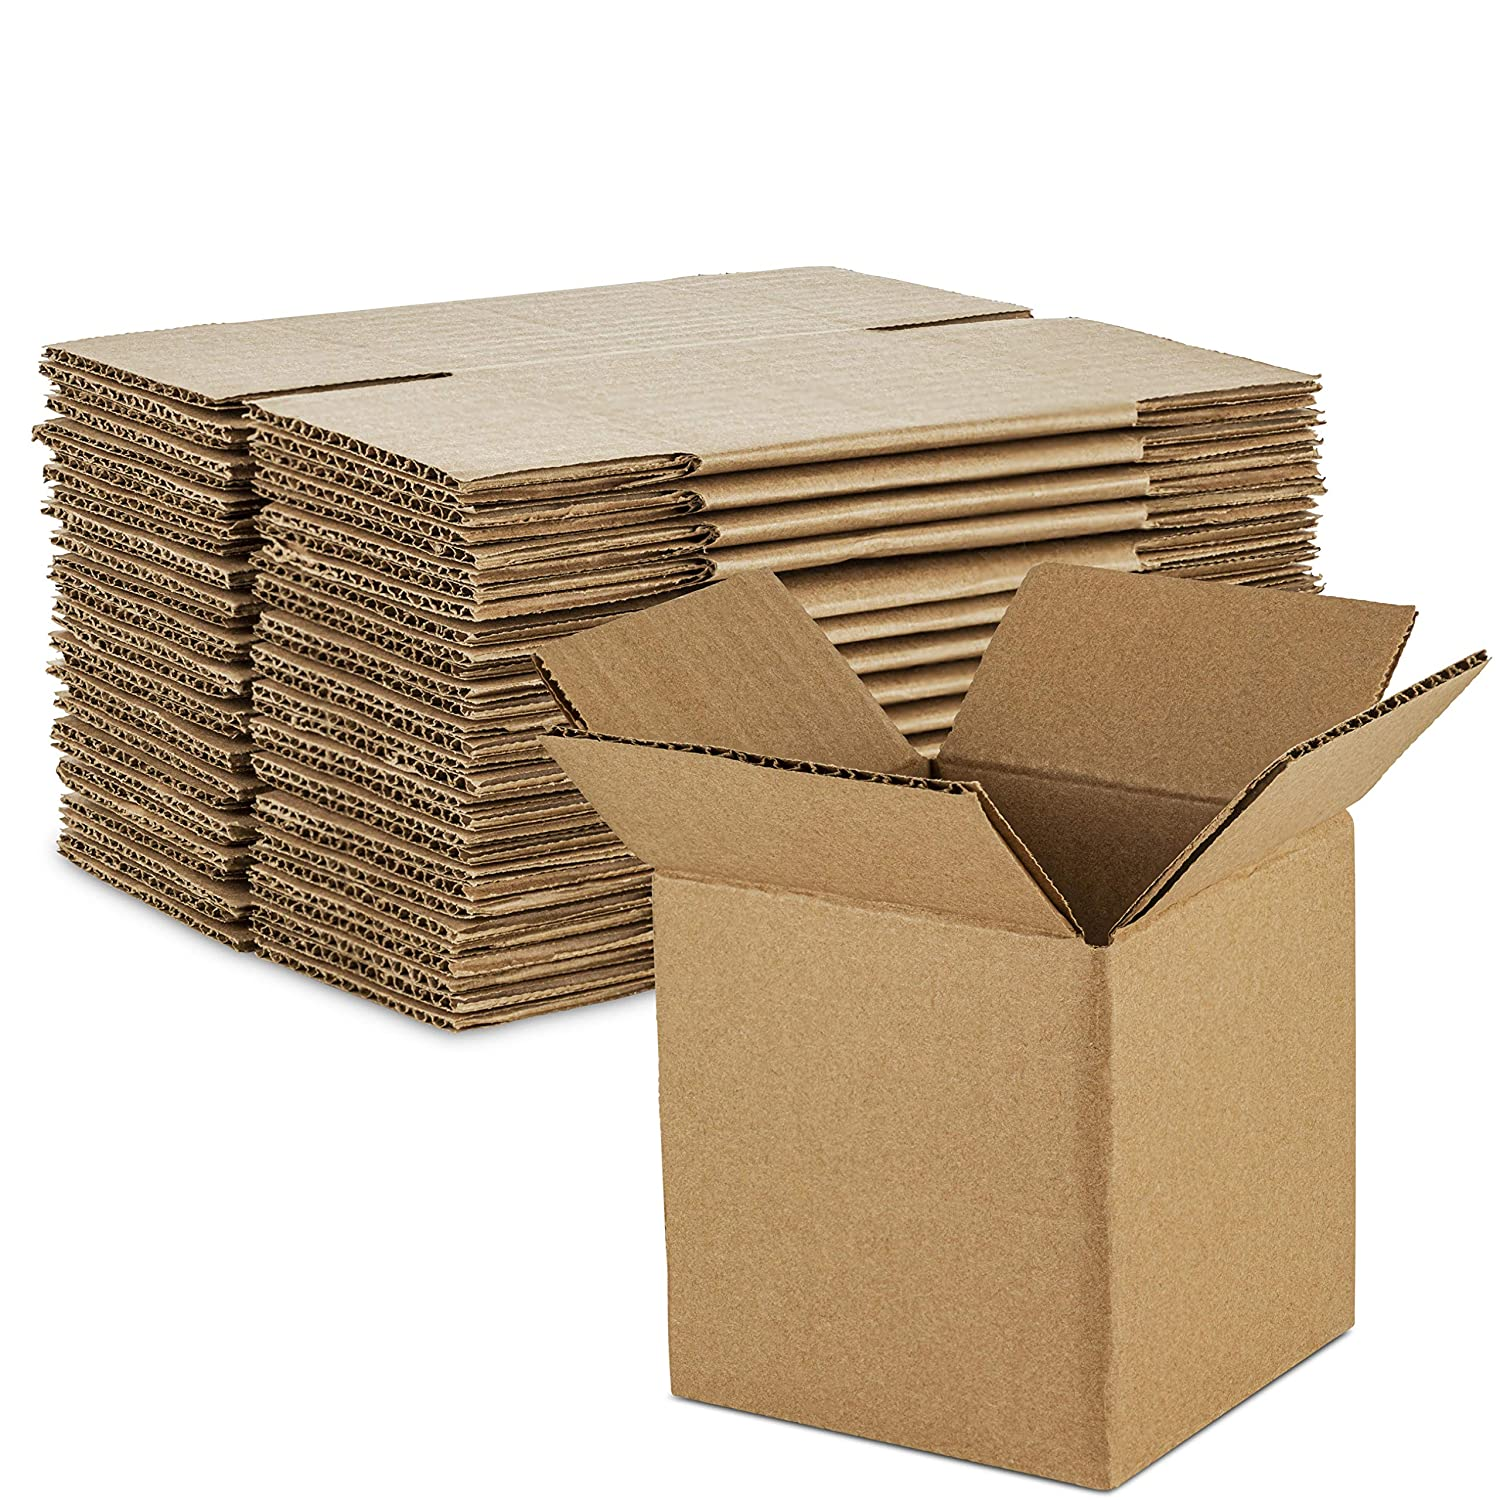 Max 63% OFF Sturdy Kraft Corrugated Cardboard Boxes and for Cheap mail order sales Mailing Shipping